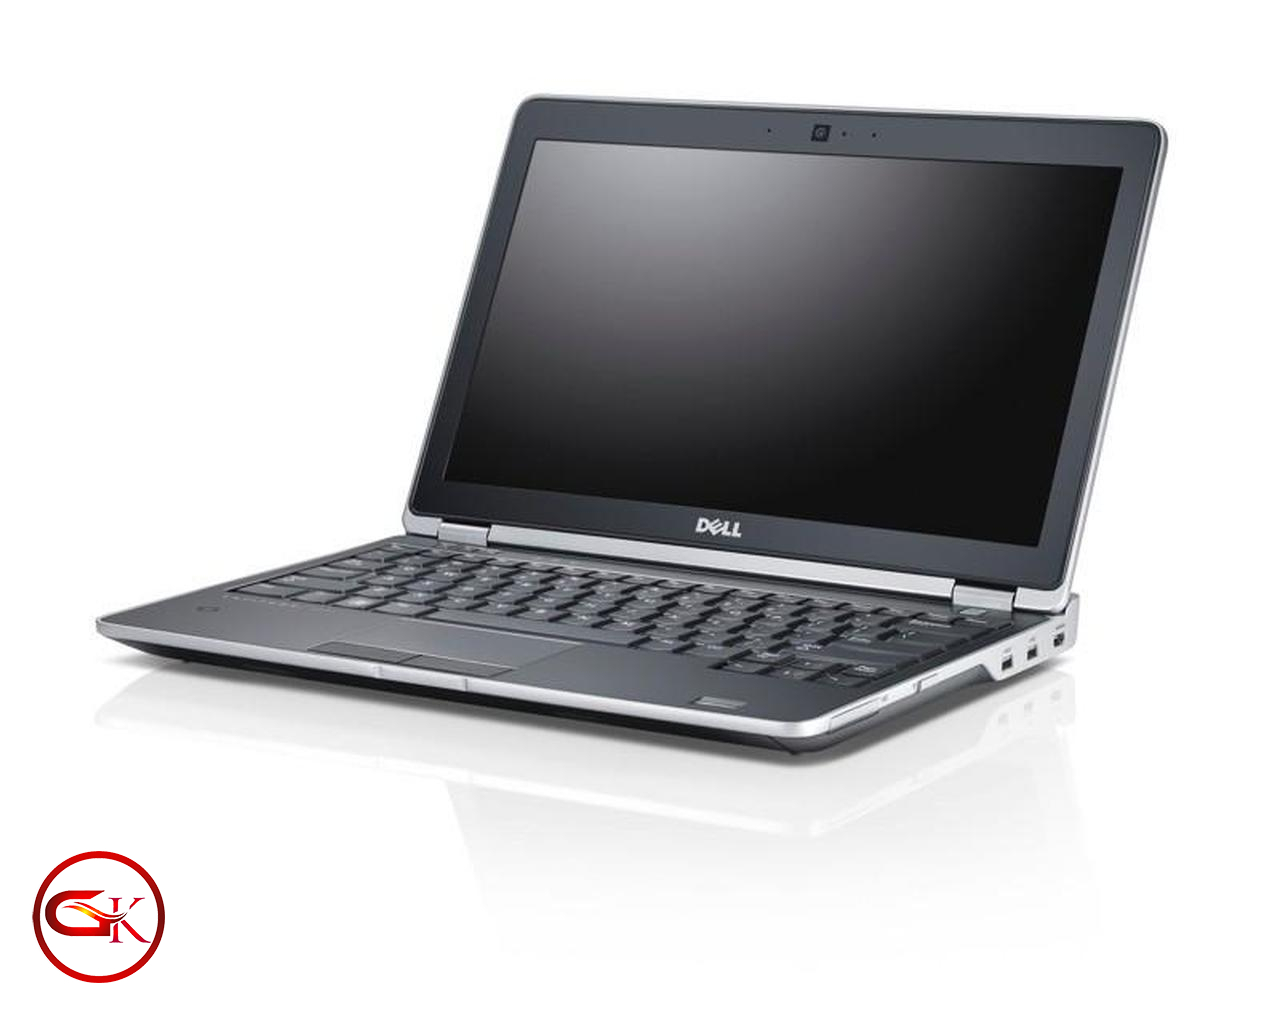 Dell Latitude E6430 | i5 3230M‎ | RAM 4G | 320G HDD | Intel HD